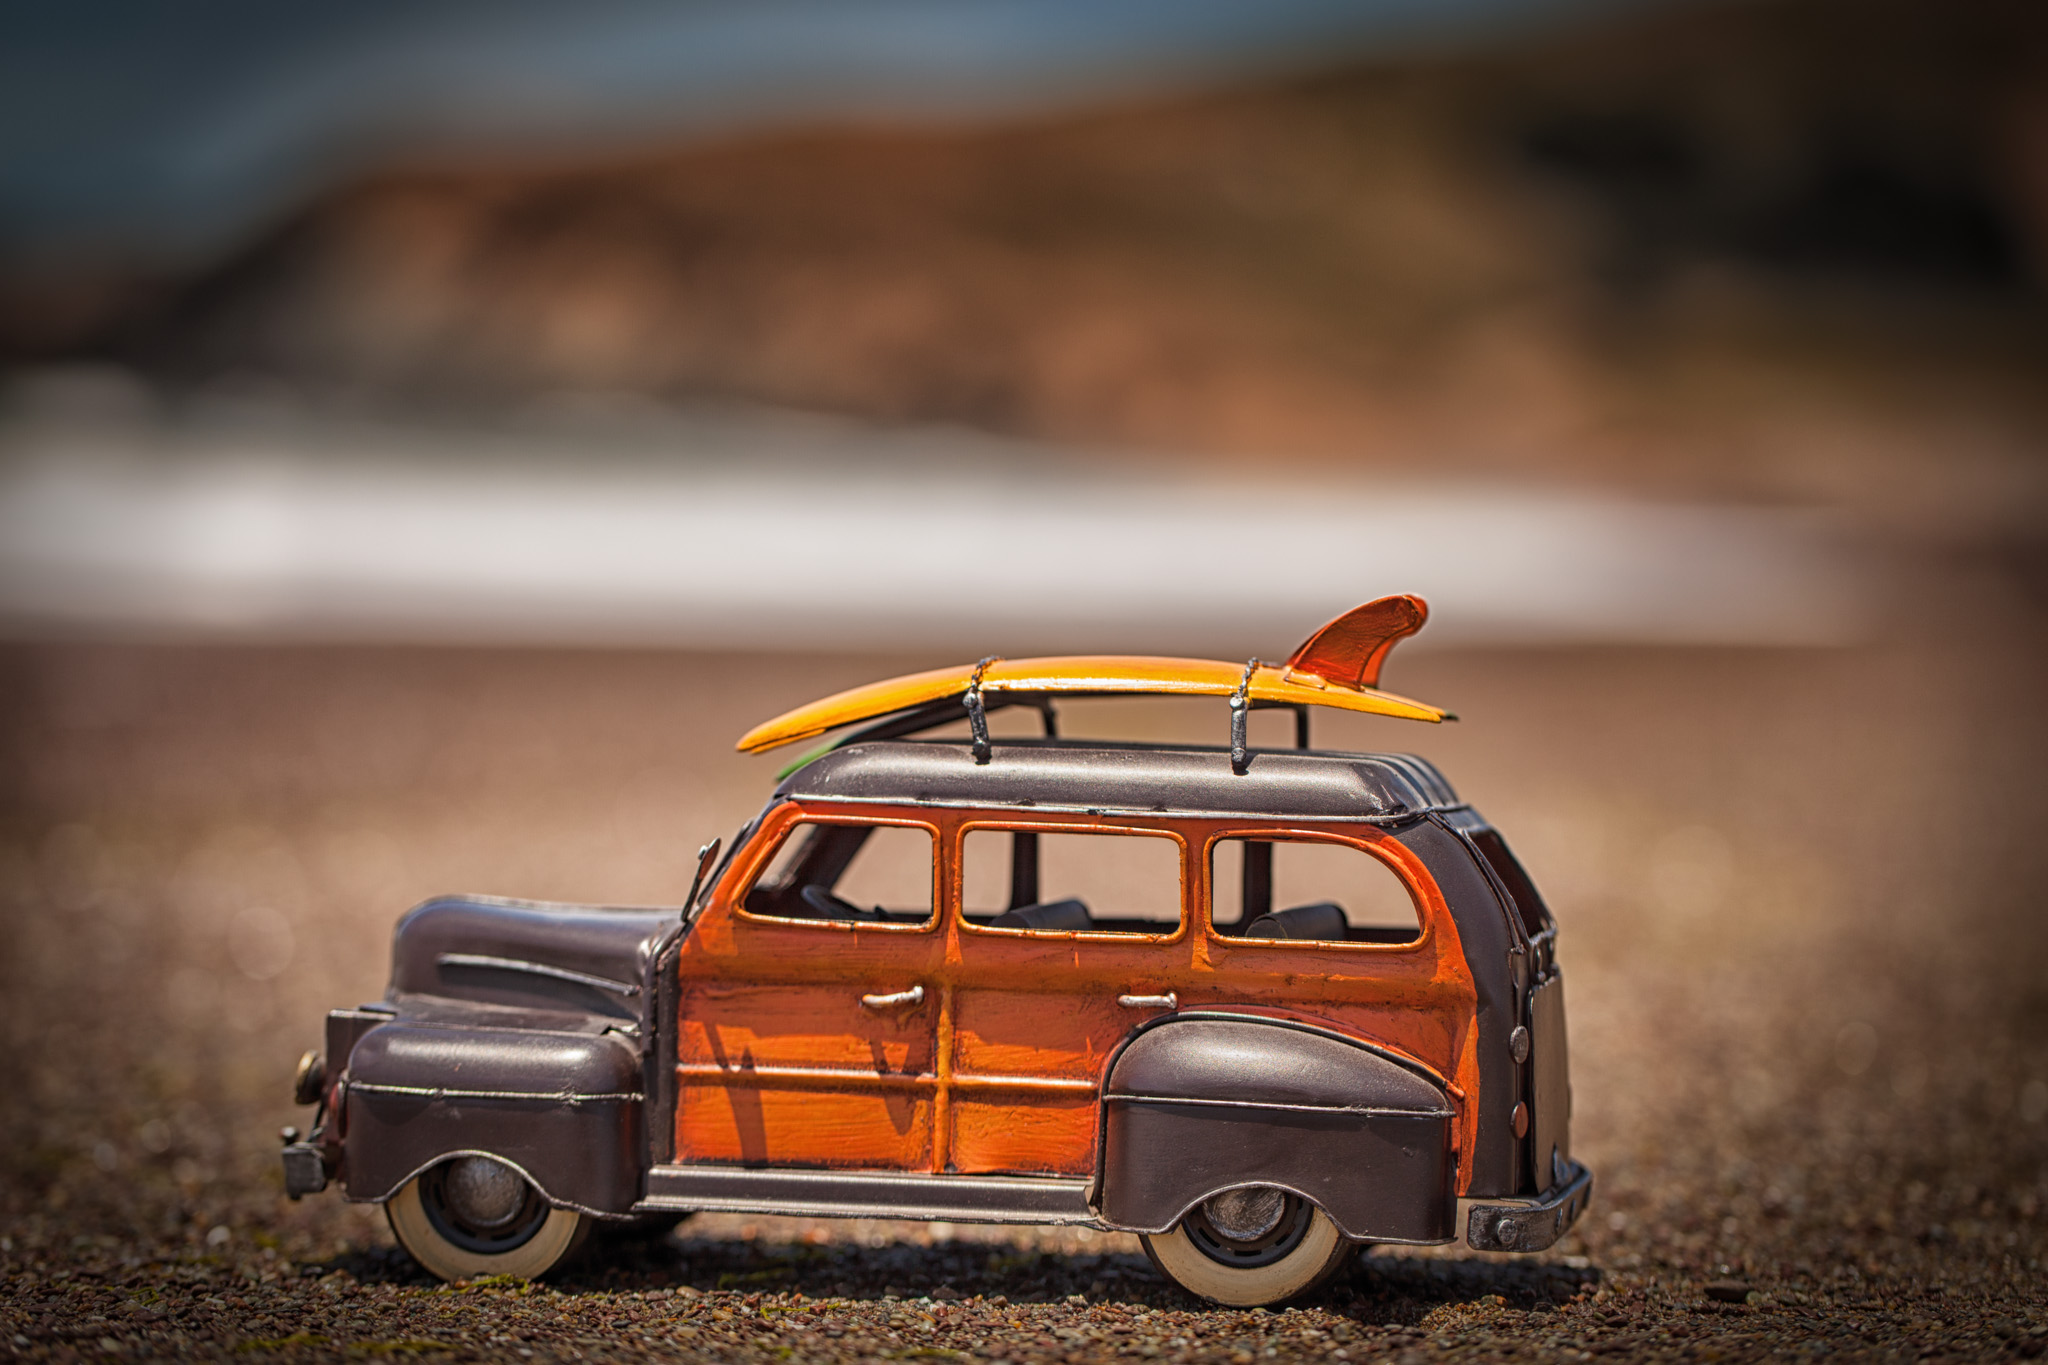 Macro Photography: Tin Car on the Ocean